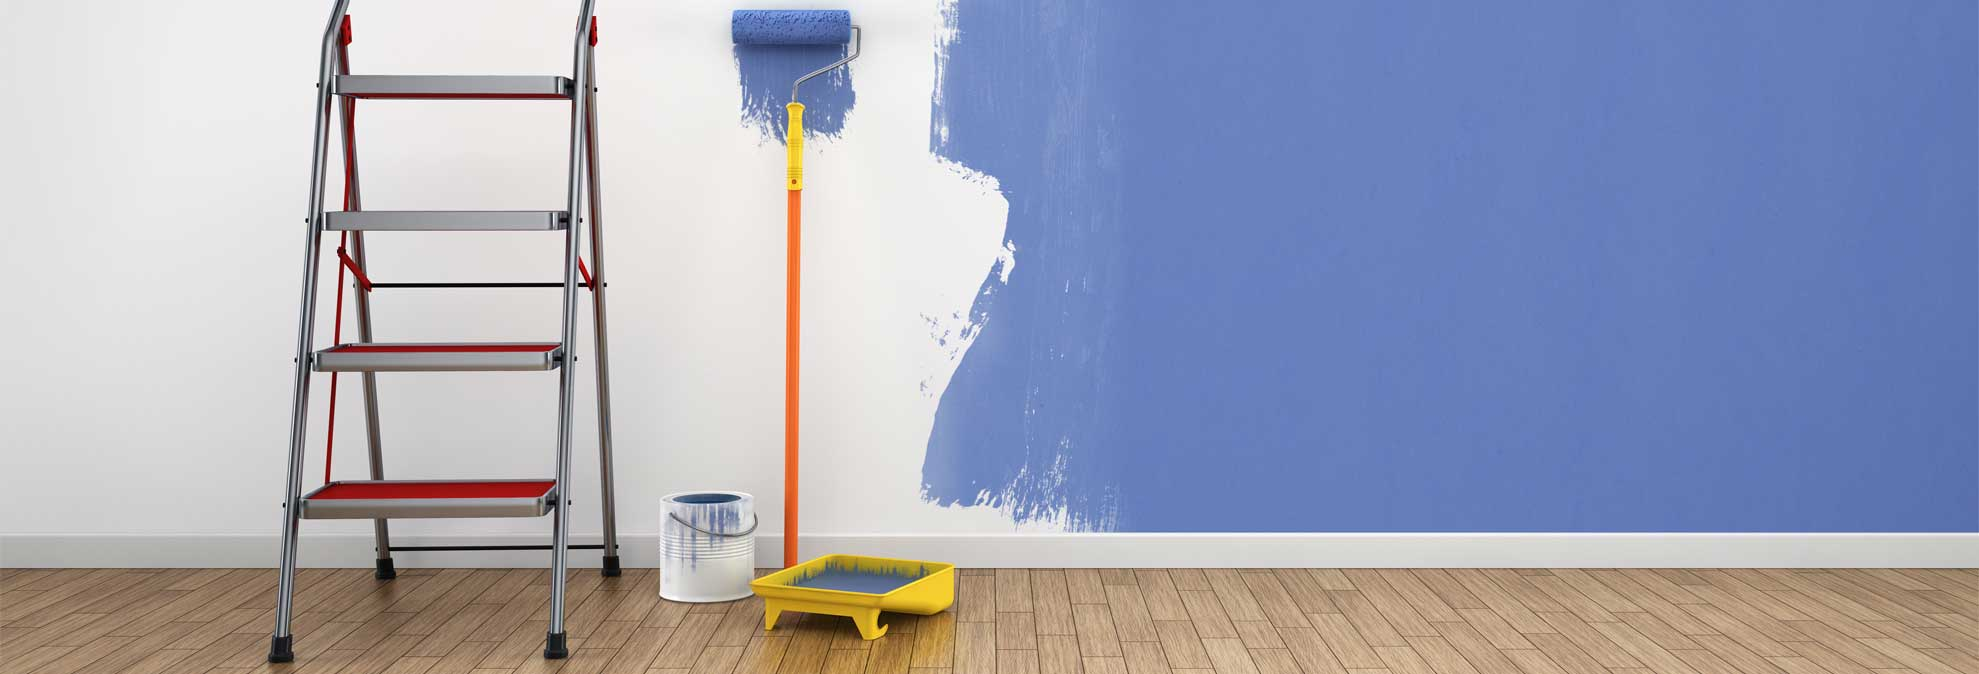 Paint a room over presidents day weekend consumer reports Best rated paint